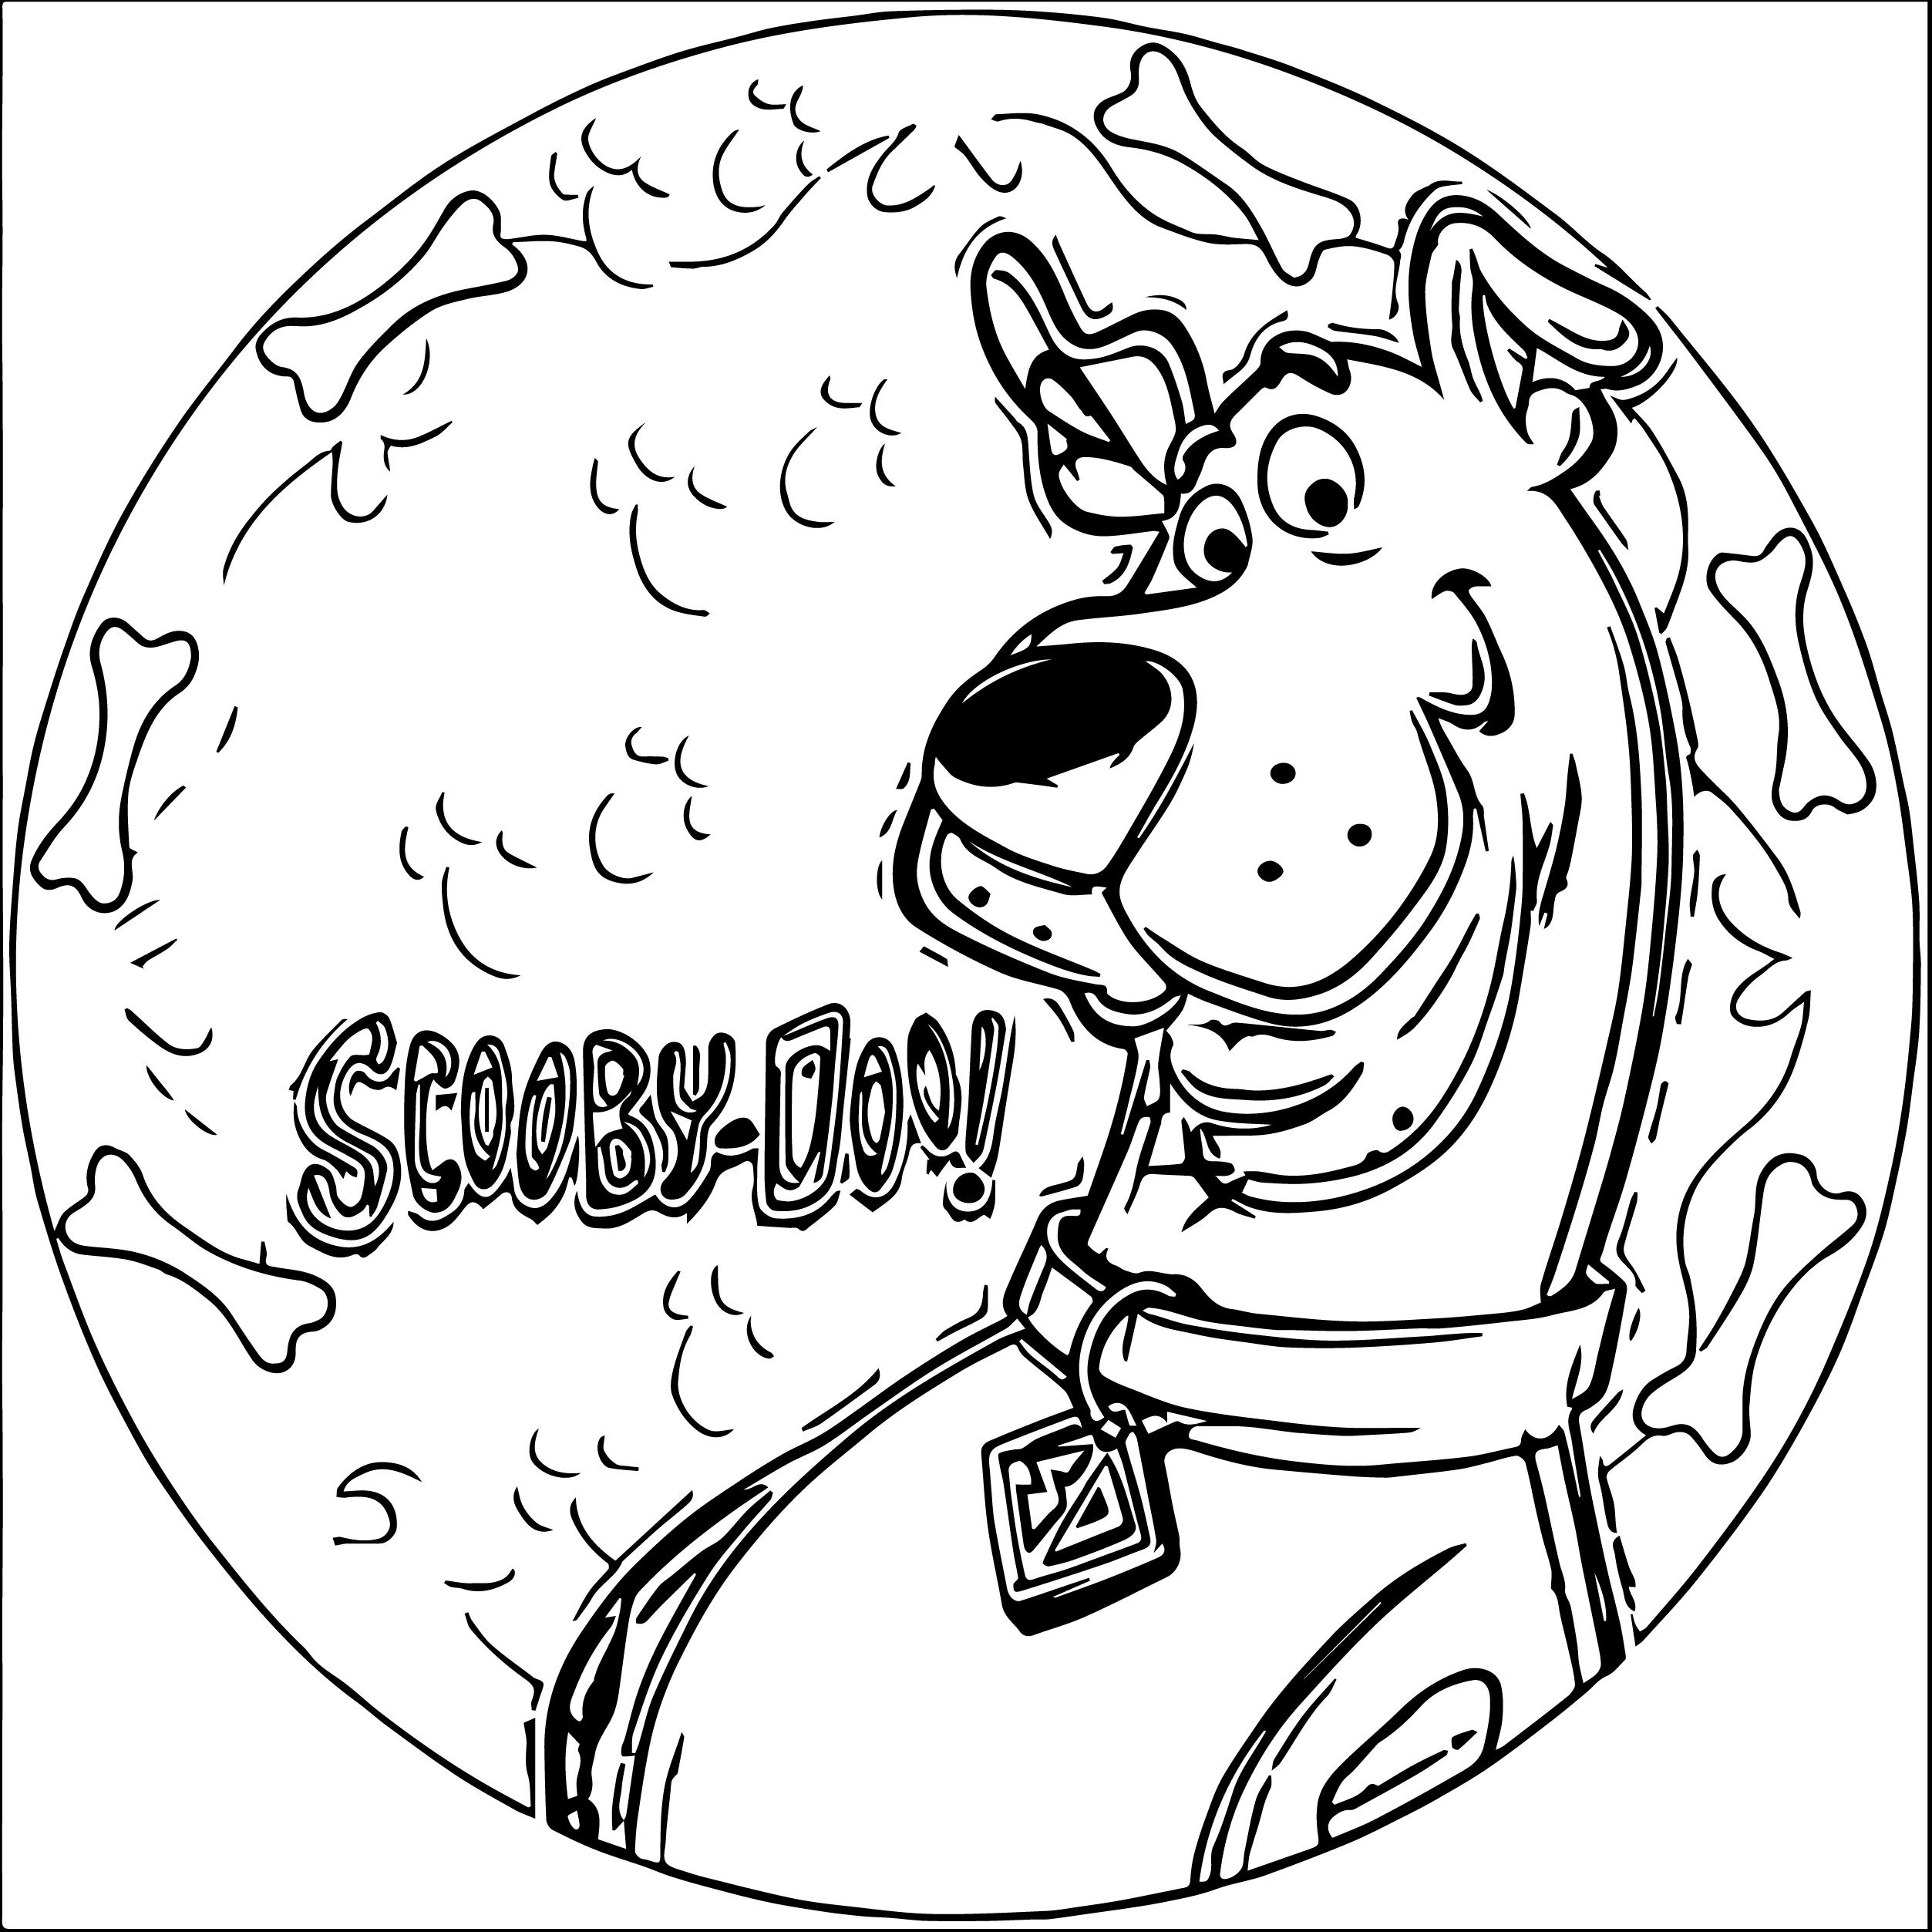 Scooby Doo Coloring Pages Wecoloringpage Scooby Doo Coloring Pages Valentine Coloring Pages Valentine Coloring